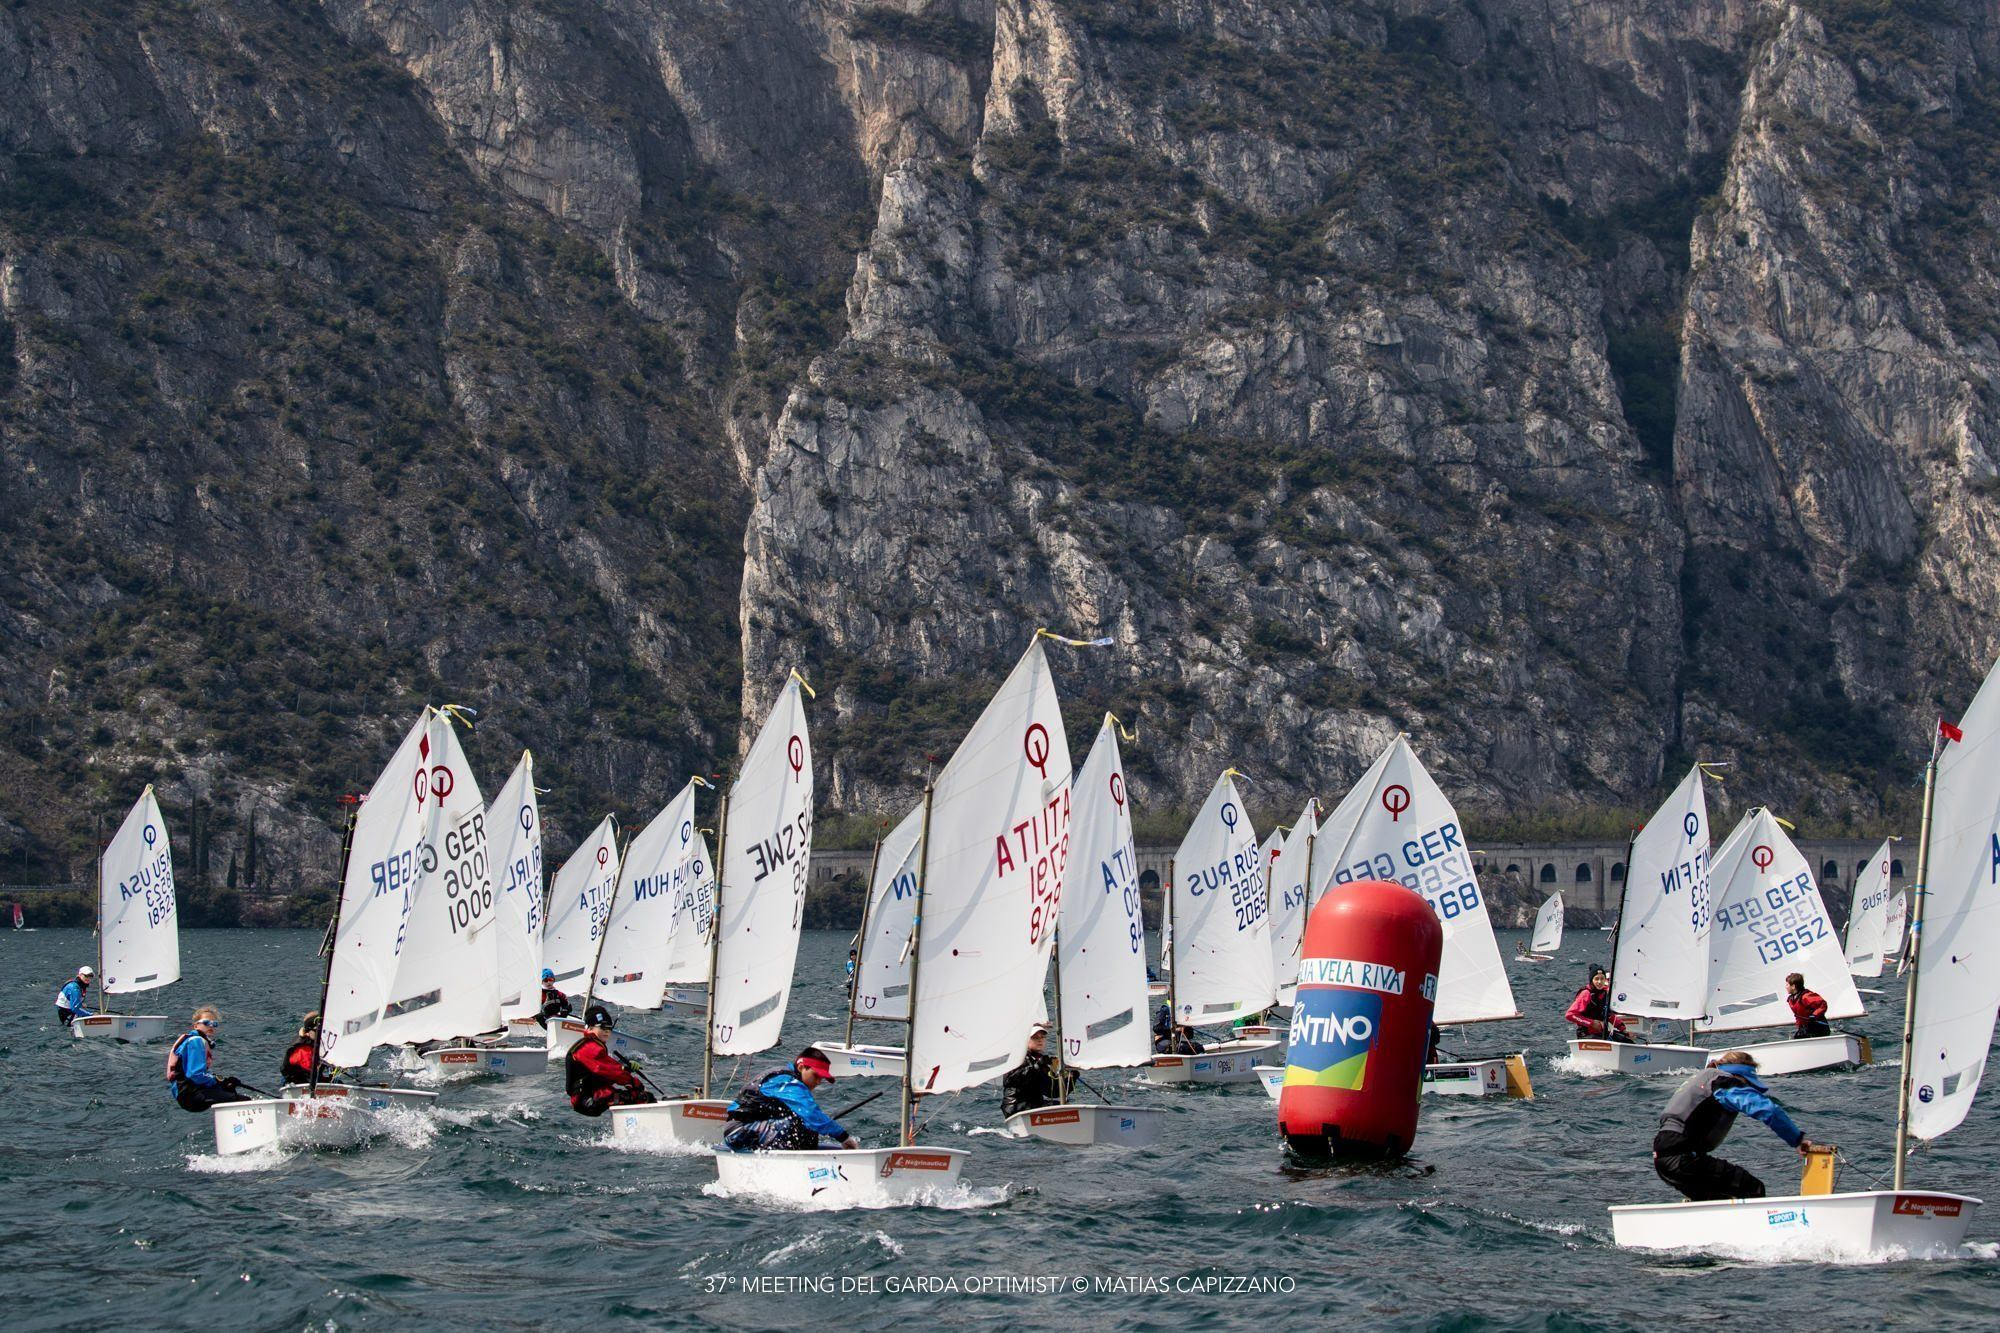 37° MEETING DEL GARDA OPTIMIST© Matias Capizzano